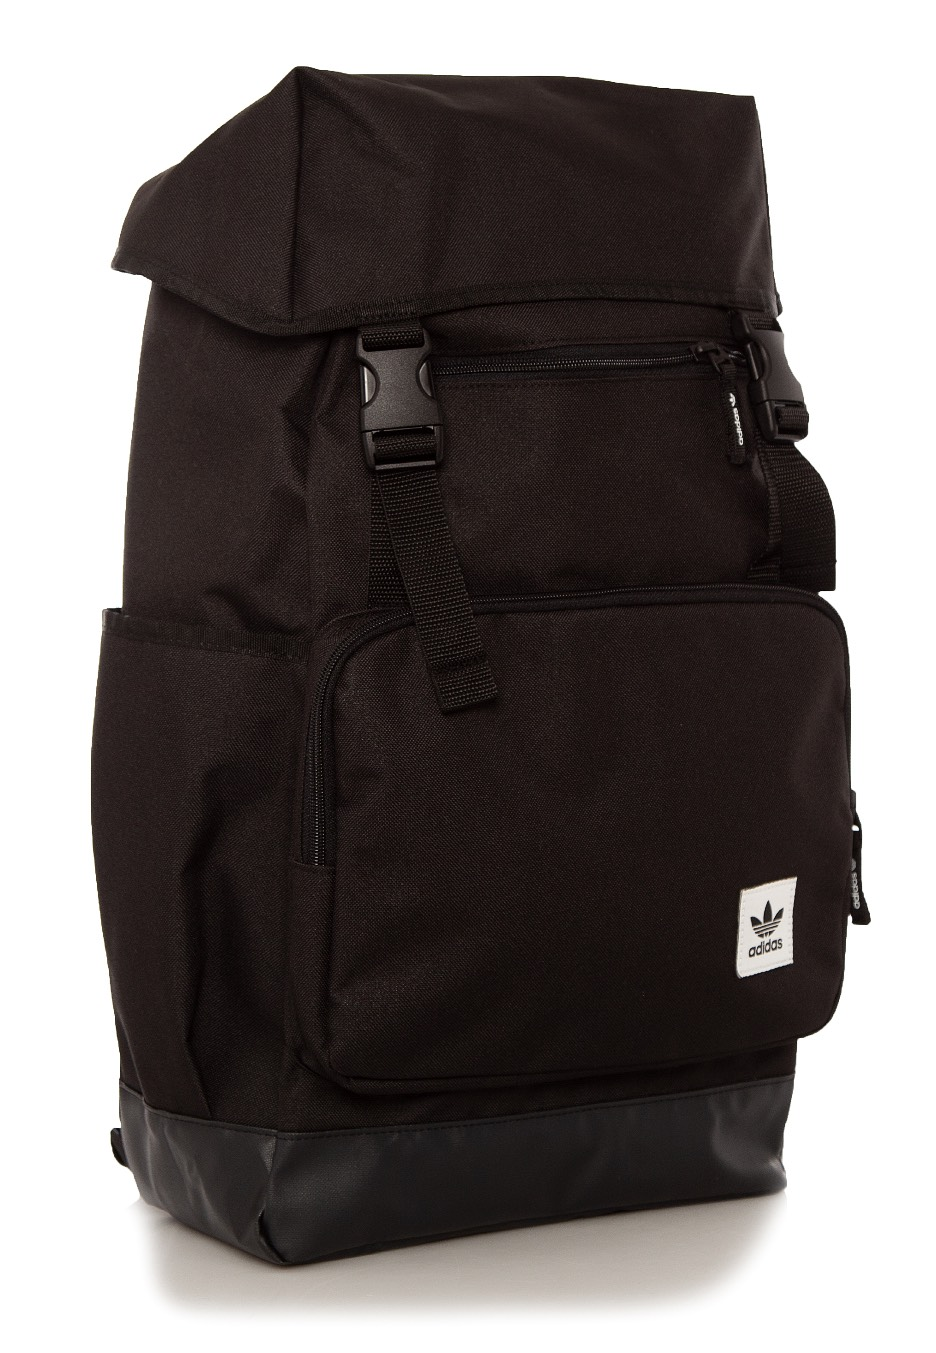 cheap look for thoughts on Adidas - Toploader Black - Backpack